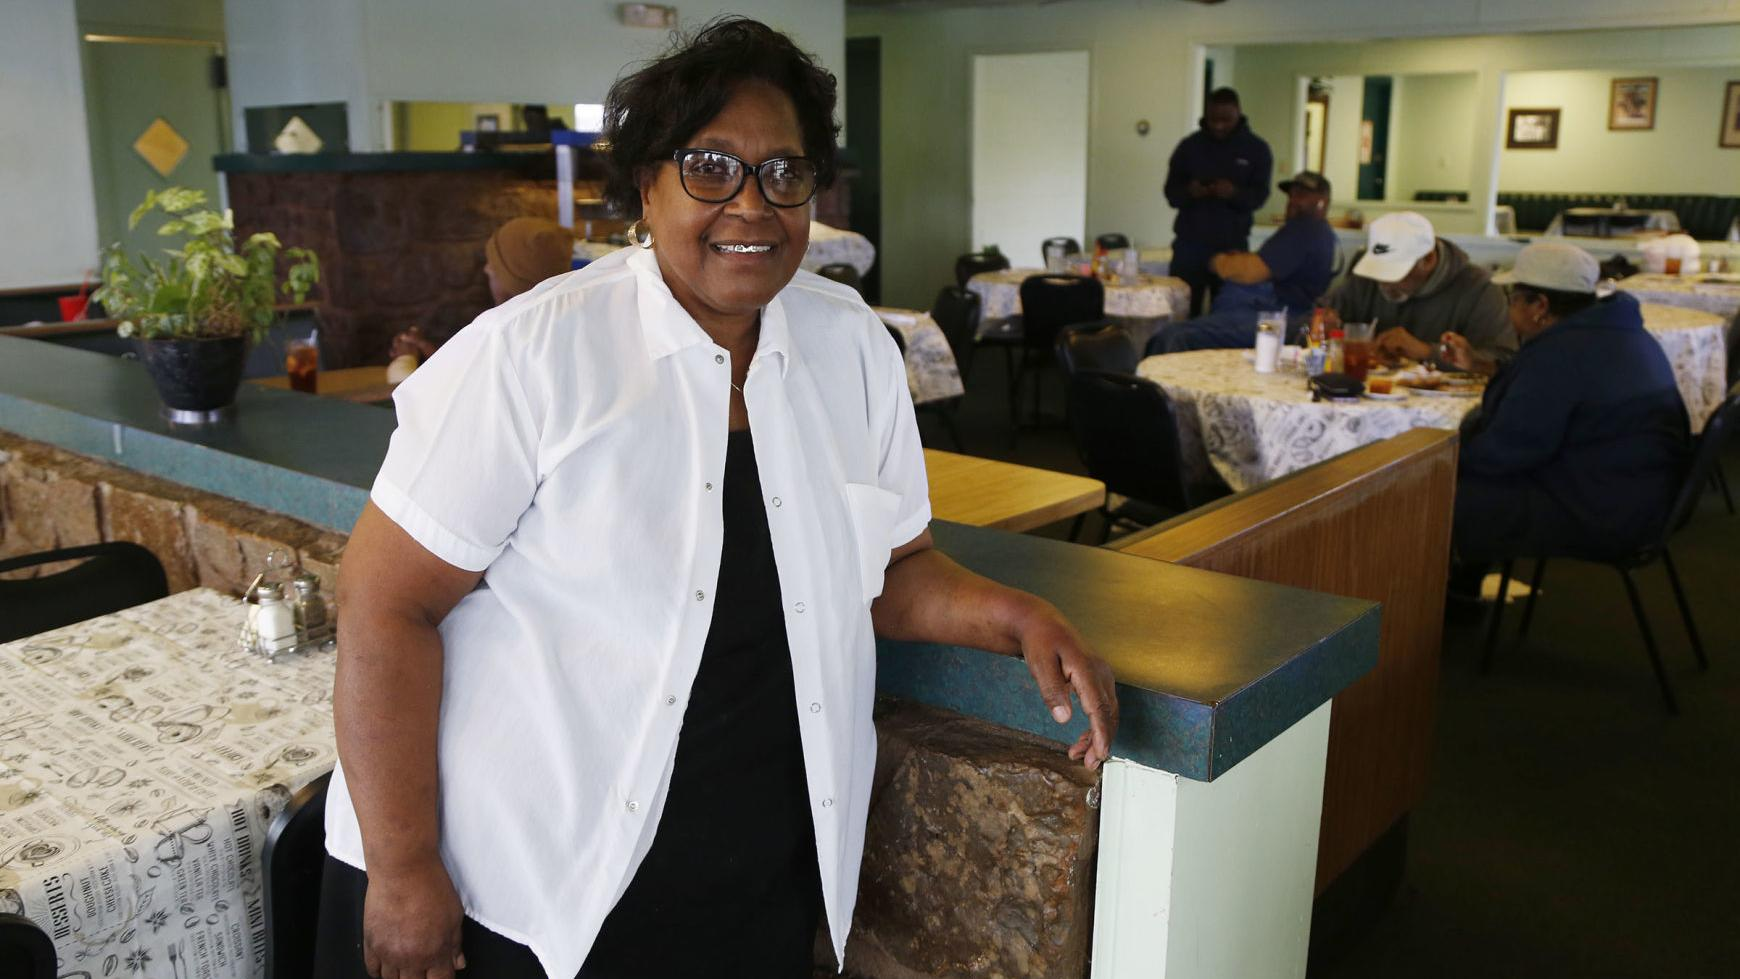 Evelyn Soul Food Restaurant to honor Wanda J five decades of cooking for Tulsans